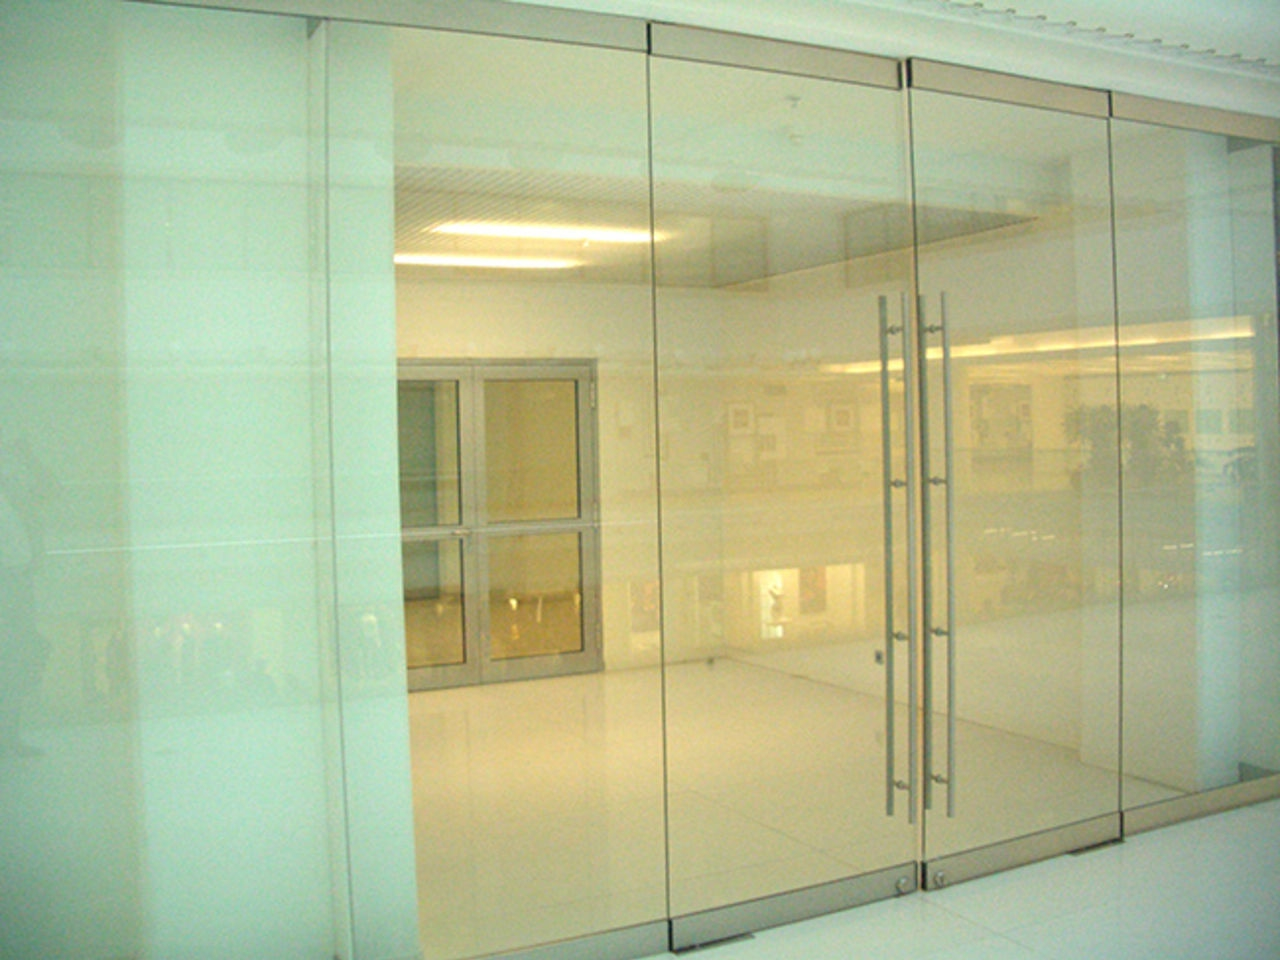 A wall of glass and double swing glass door